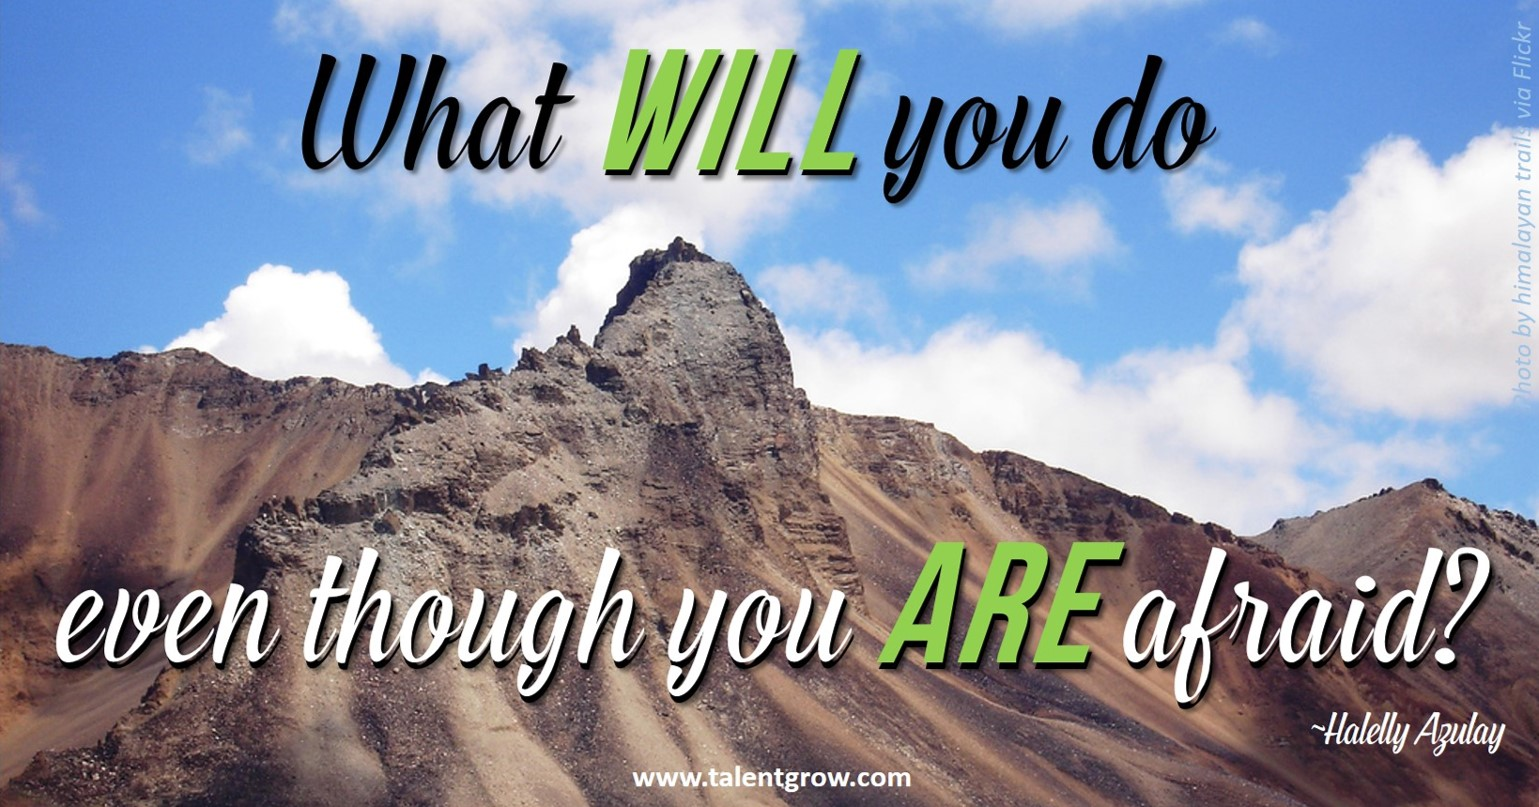 What WILL you do even though you ARE afraid? ~Halelly Azulay, TalentGrow.com